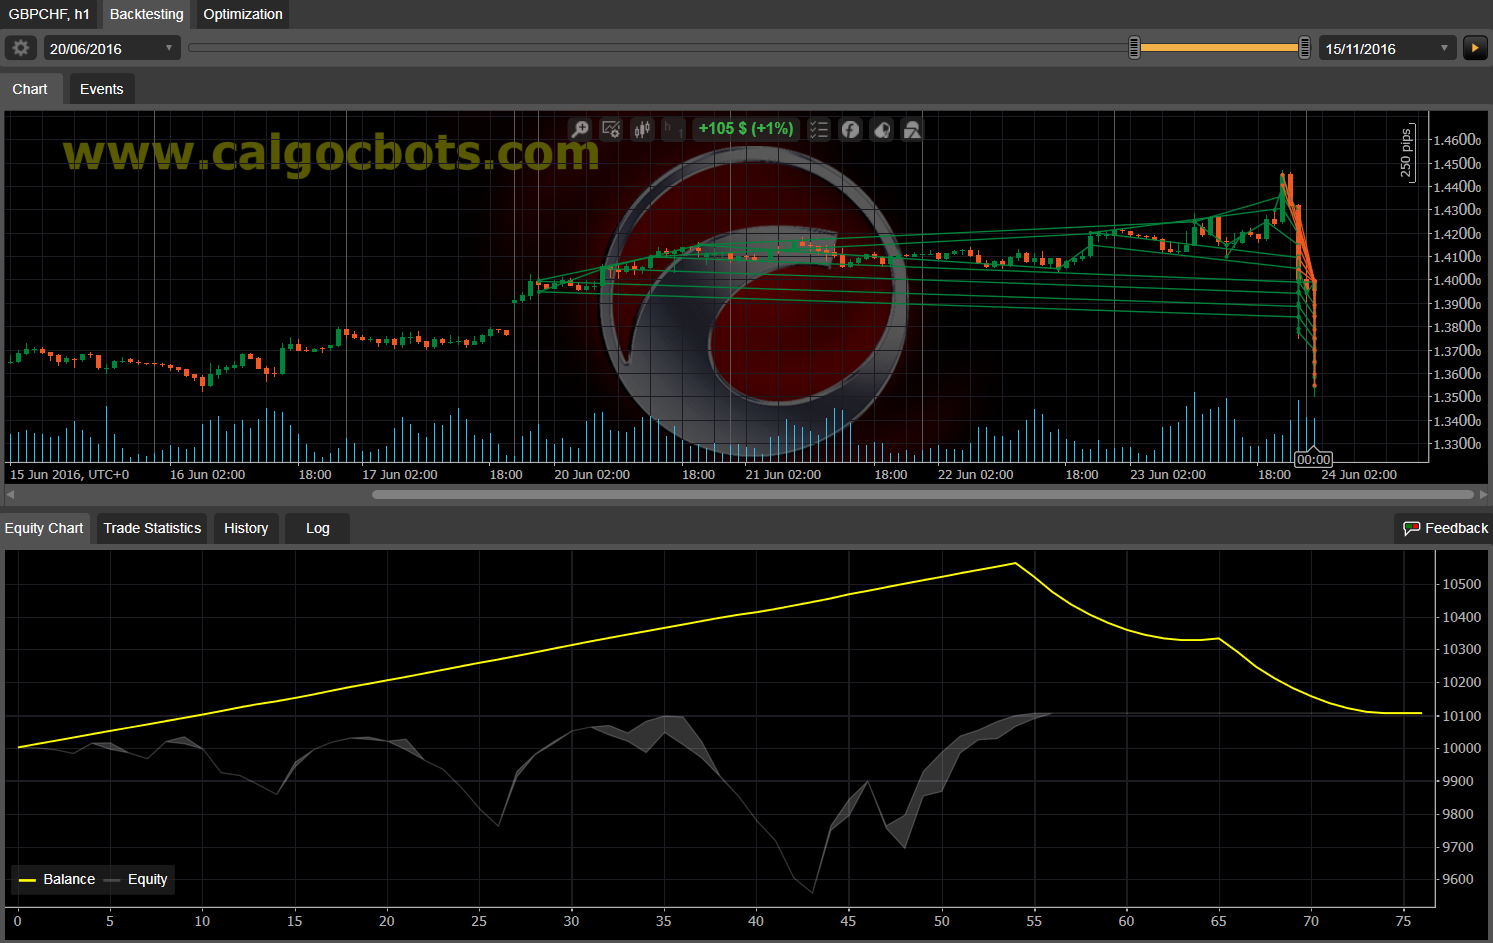 Dual Grid Hedge GBP CHF 1h cAlgo cBots cTrader 100 50 100 - 11 b